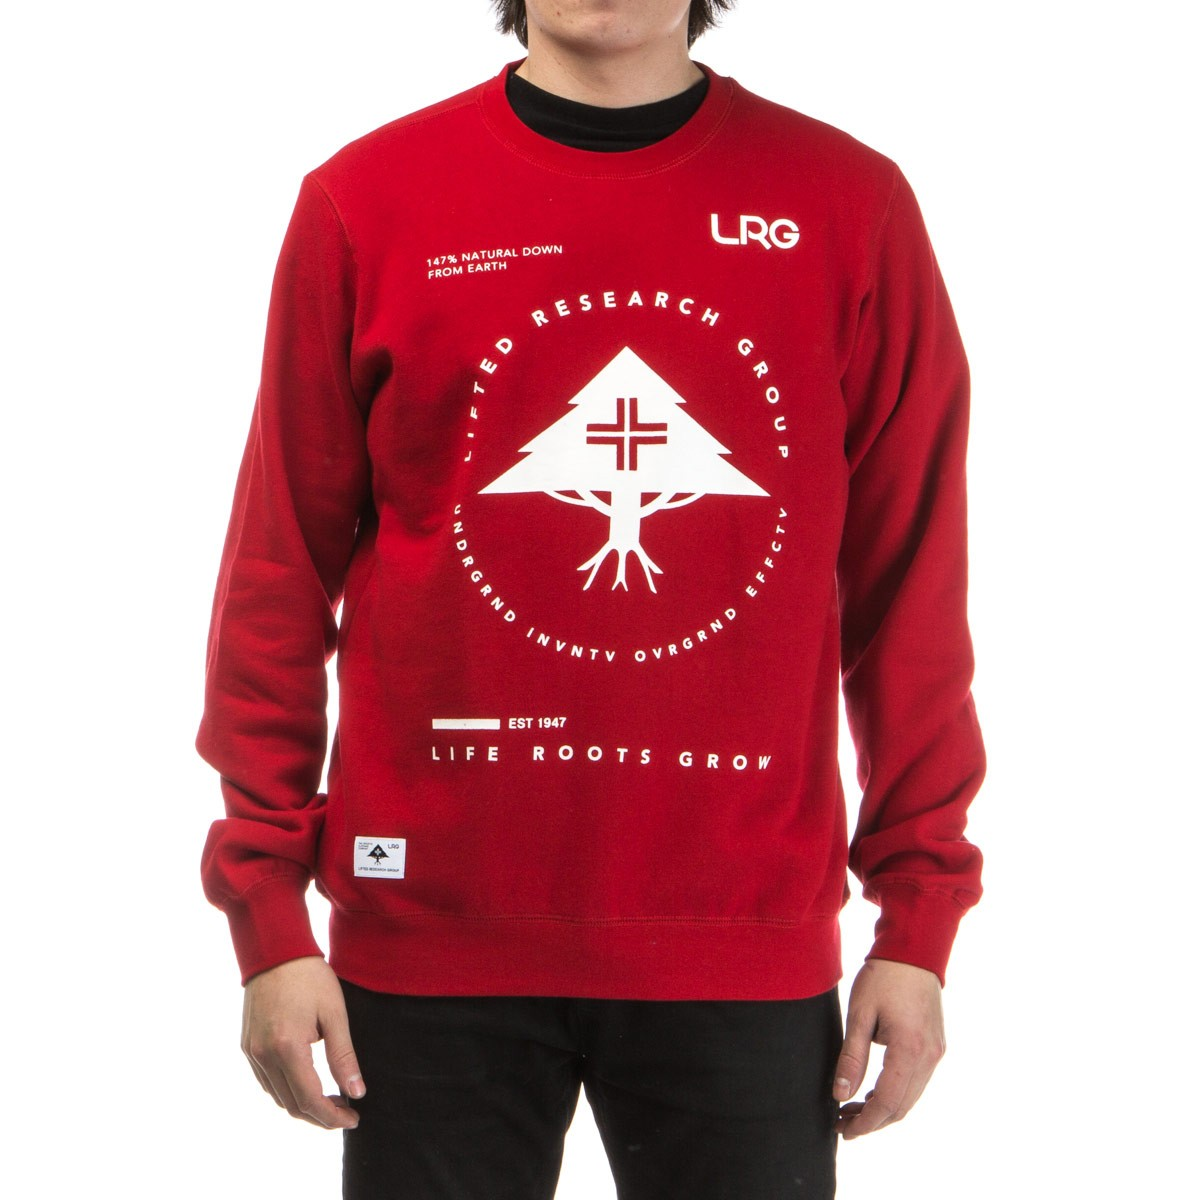 LRG Research Collection Crewneck Sweatshirt - Red